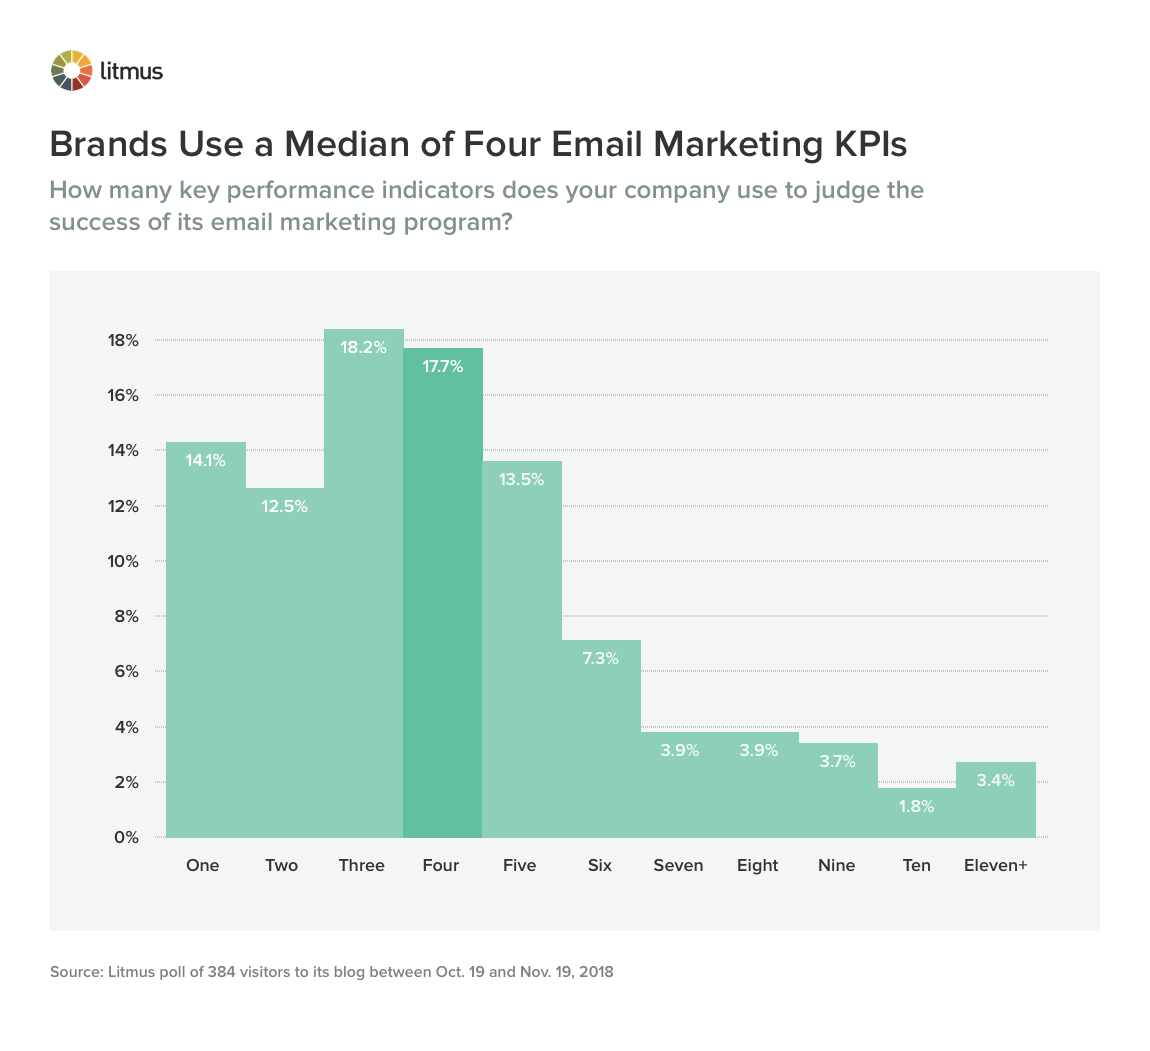 Brands Use a Median of Four Email Marketing KPIs